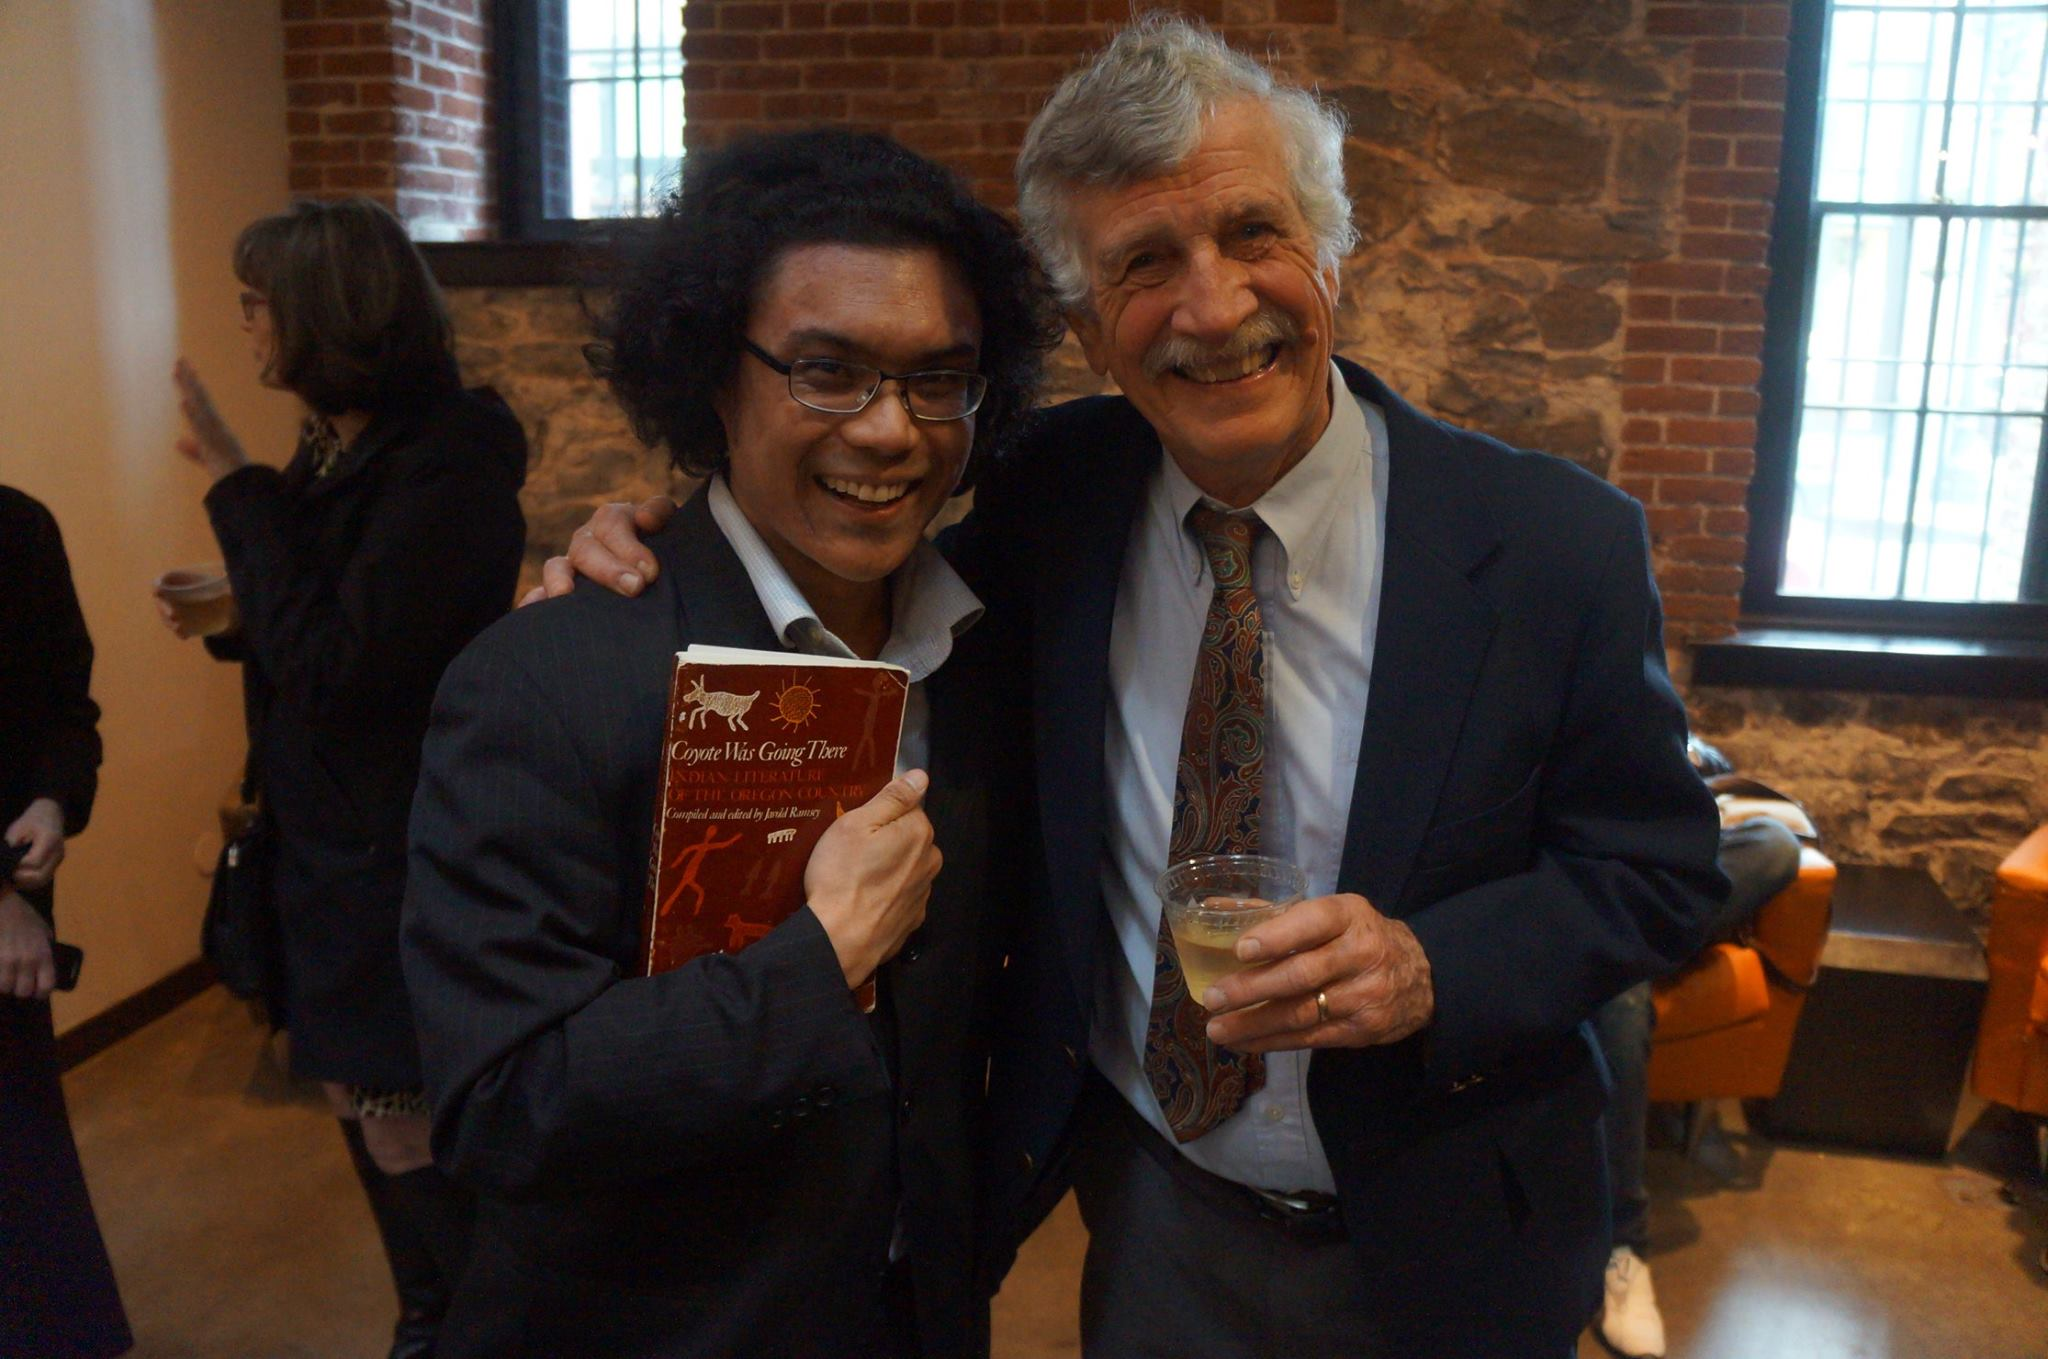 Armin Tolentino (left) with Jarold Ramsey. (Photograph: Laura Stanfill)